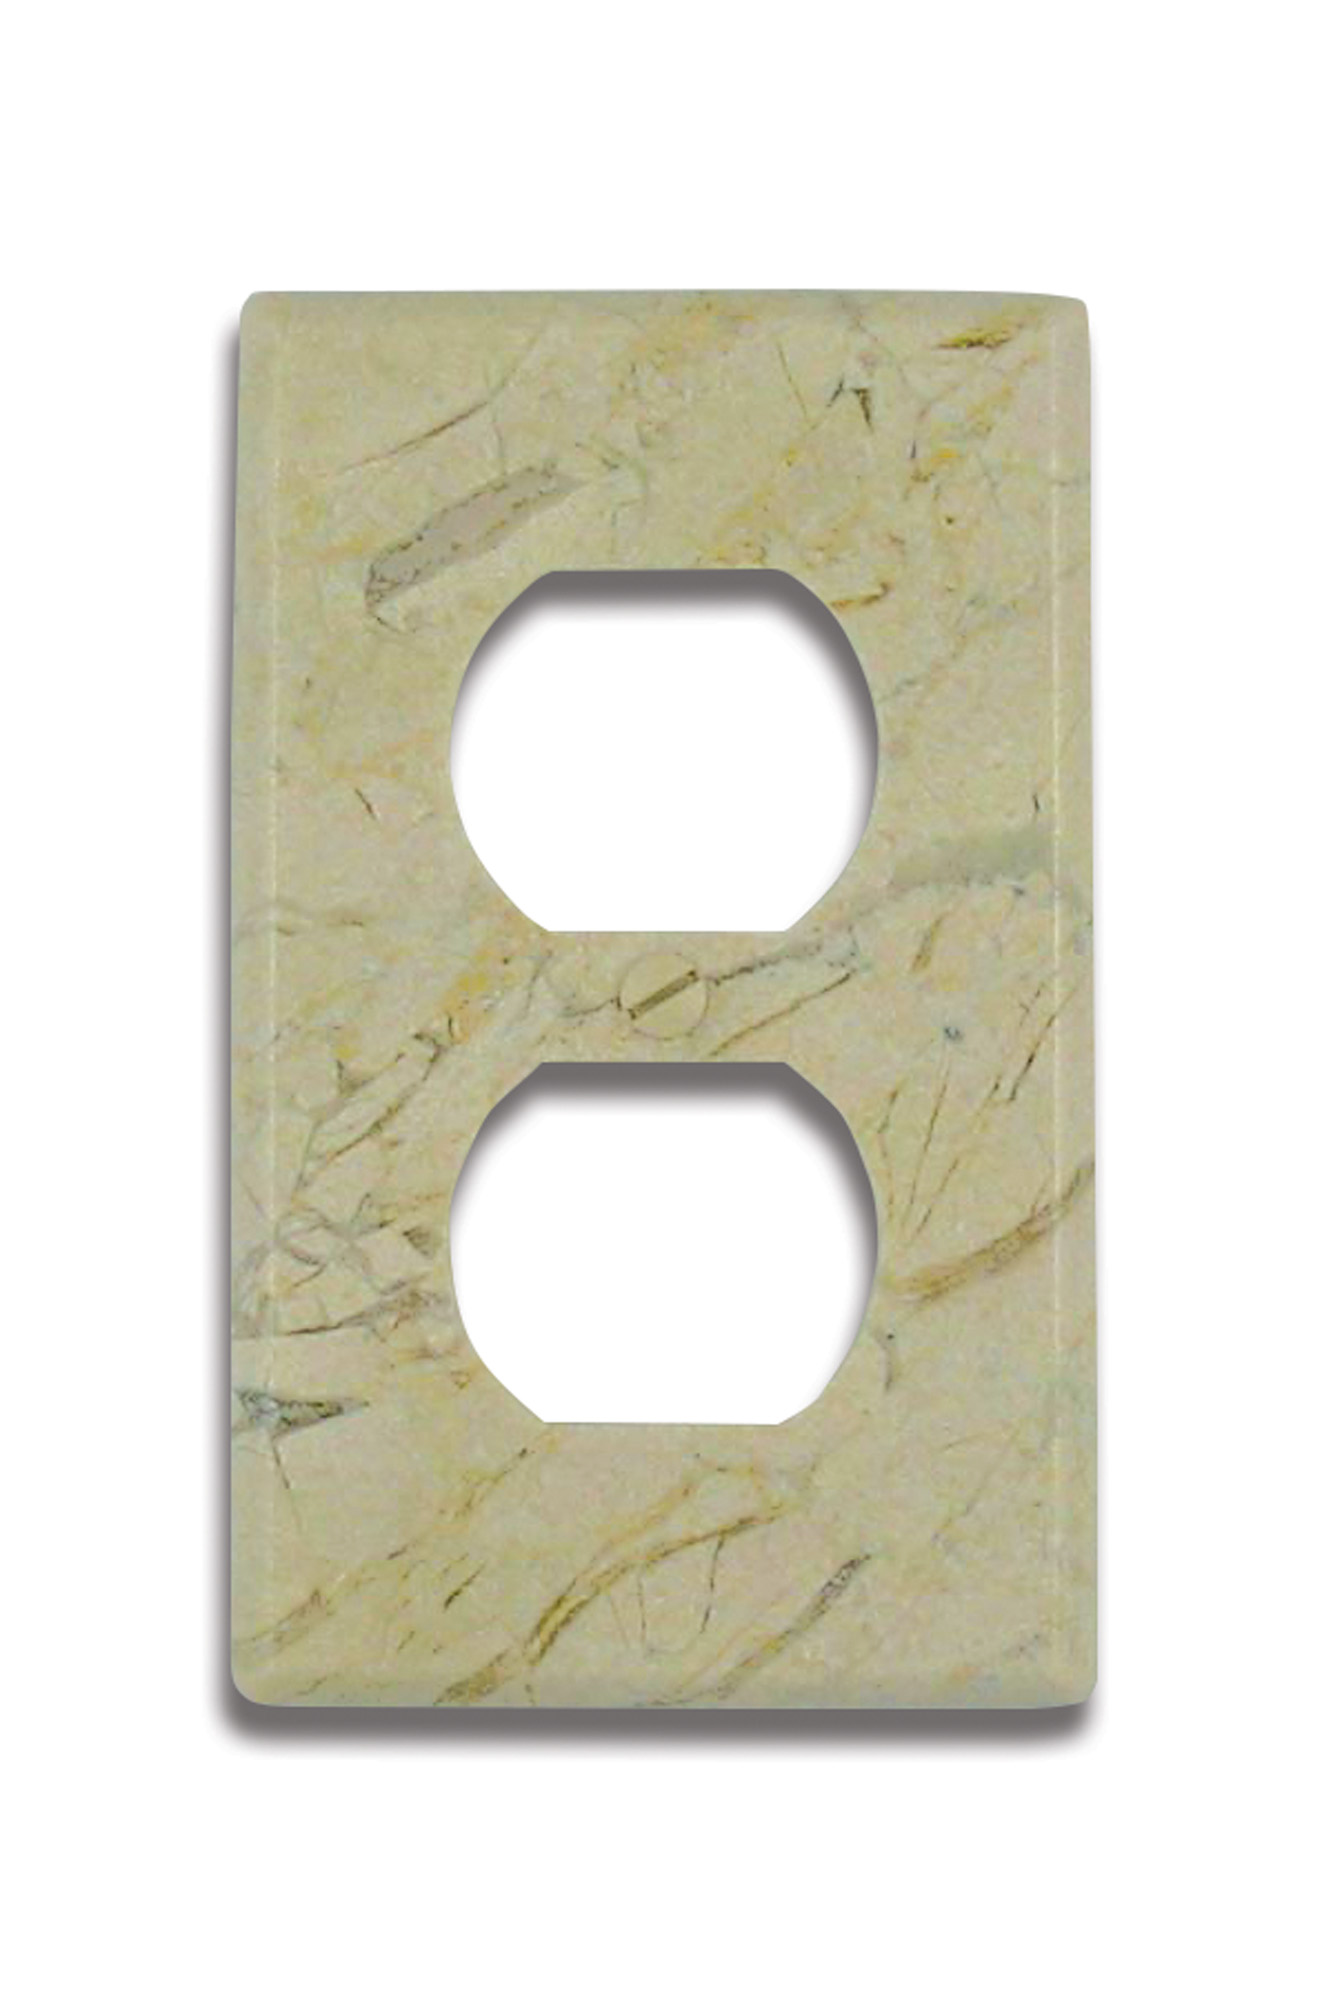 5_HIRES_stonewall_marble_outlet_gn